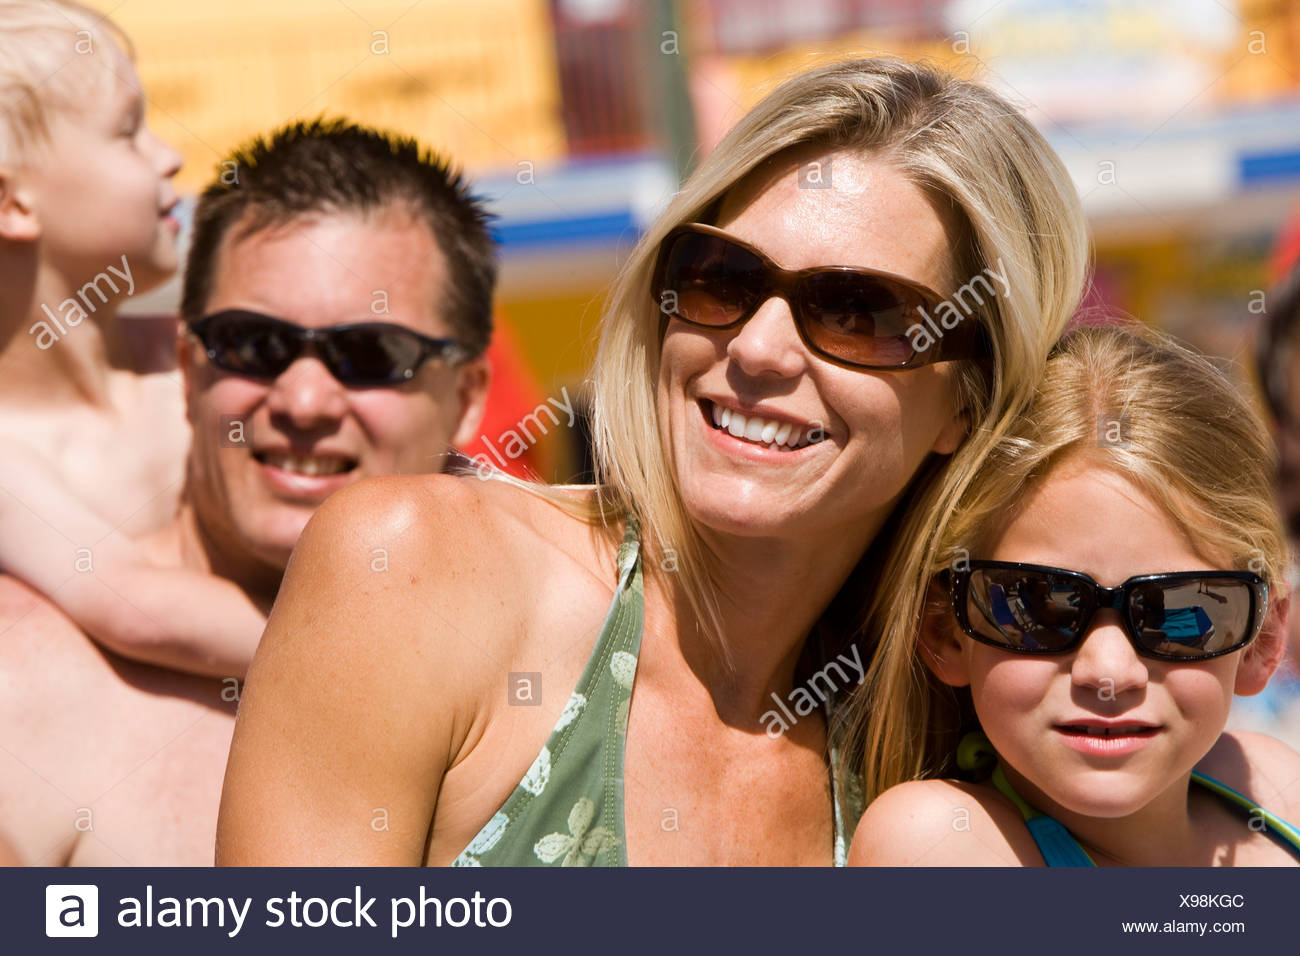 Headshot of family wearing swimsuits and sunglasses on sunny day - Stock Image